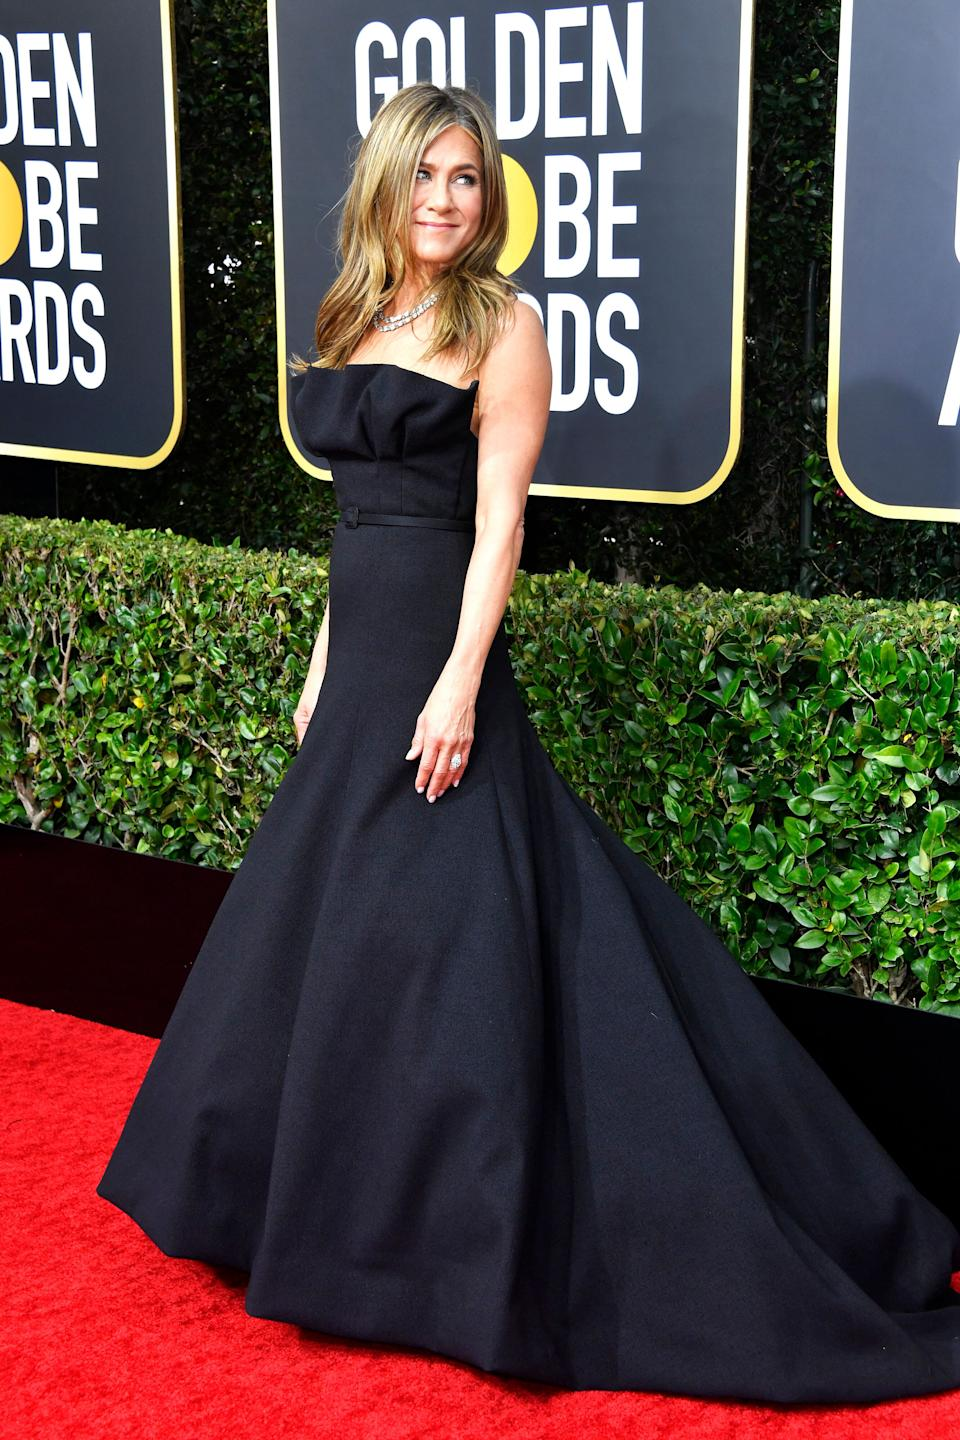 This gown has a lovely and graceful silhouette. But at this point in her career, isn't it time for Jennifer Aniston to take some bigger risks?